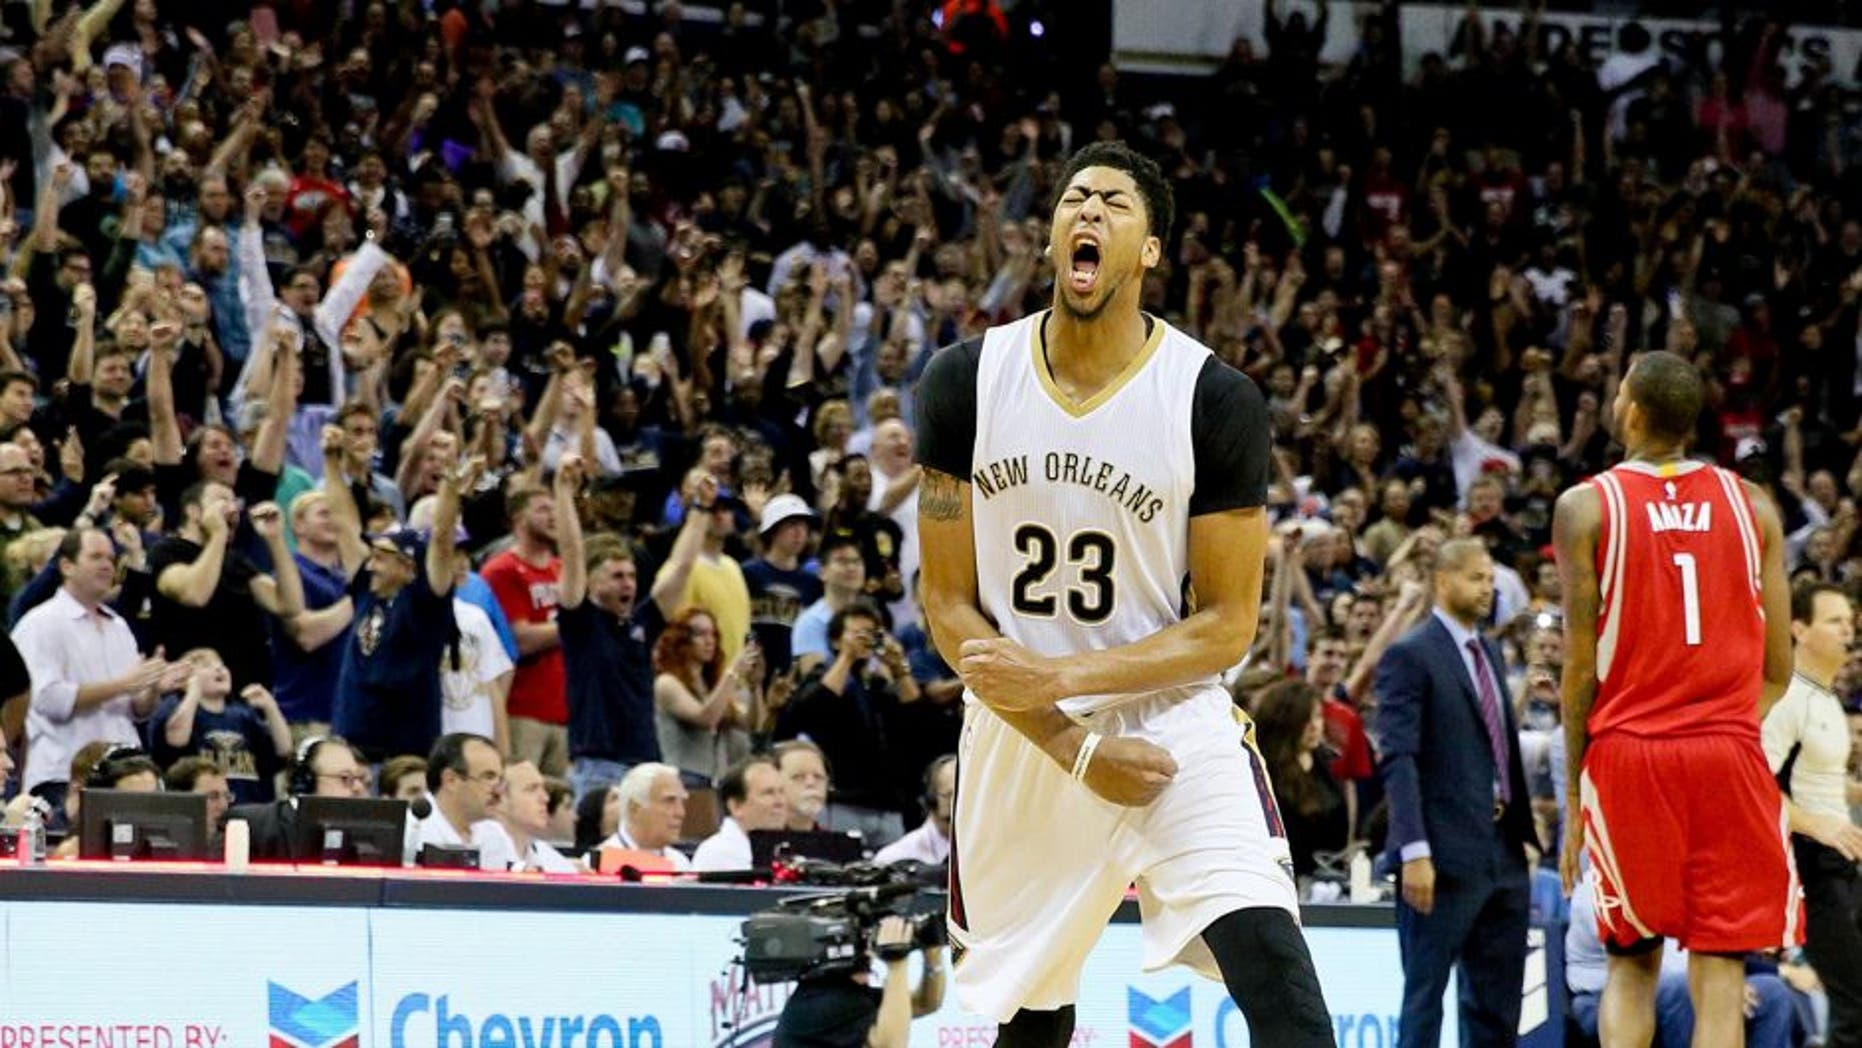 Dec 26, 2015; New Orleans, LA, USA; New Orleans Pelicans forward Anthony Davis (23) celebrates after defeating the Houston Rockets 110-108 at the Smoothie King Center. Mandatory Credit: Derick E. Hingle-USA TODAY Sports